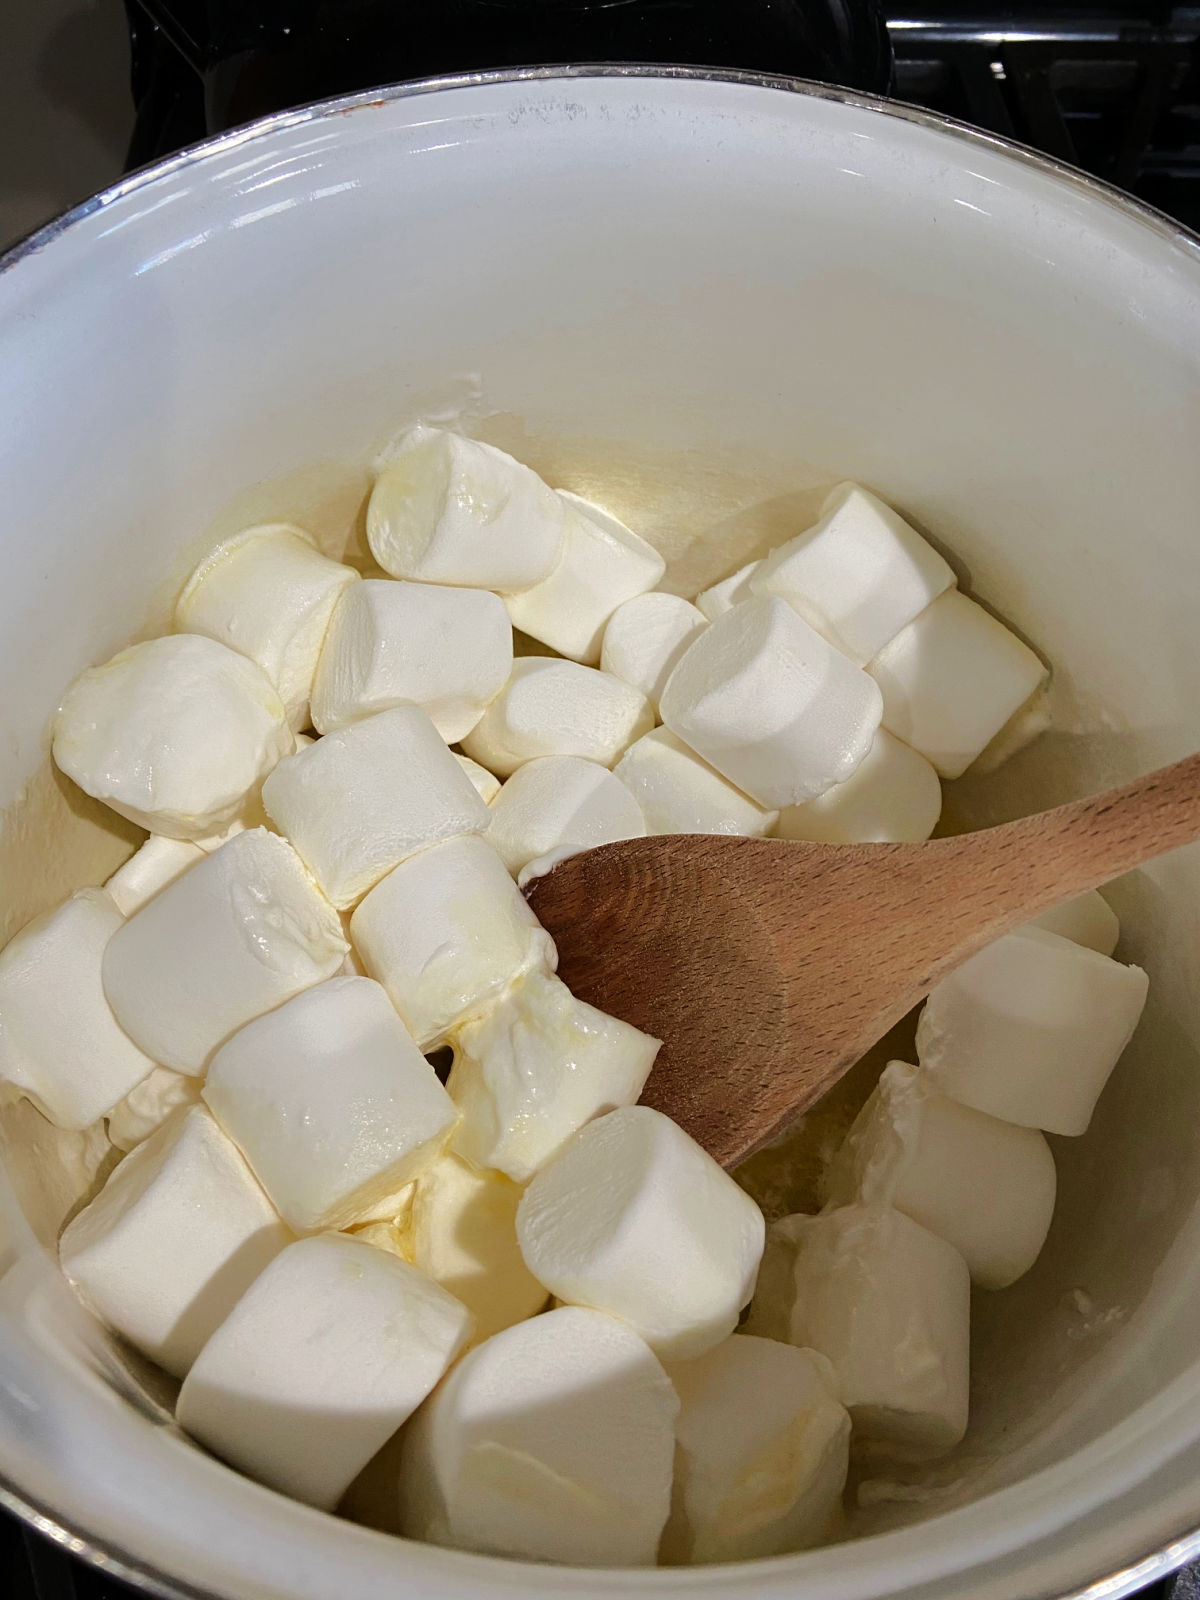 Melting butter and marshmallows together